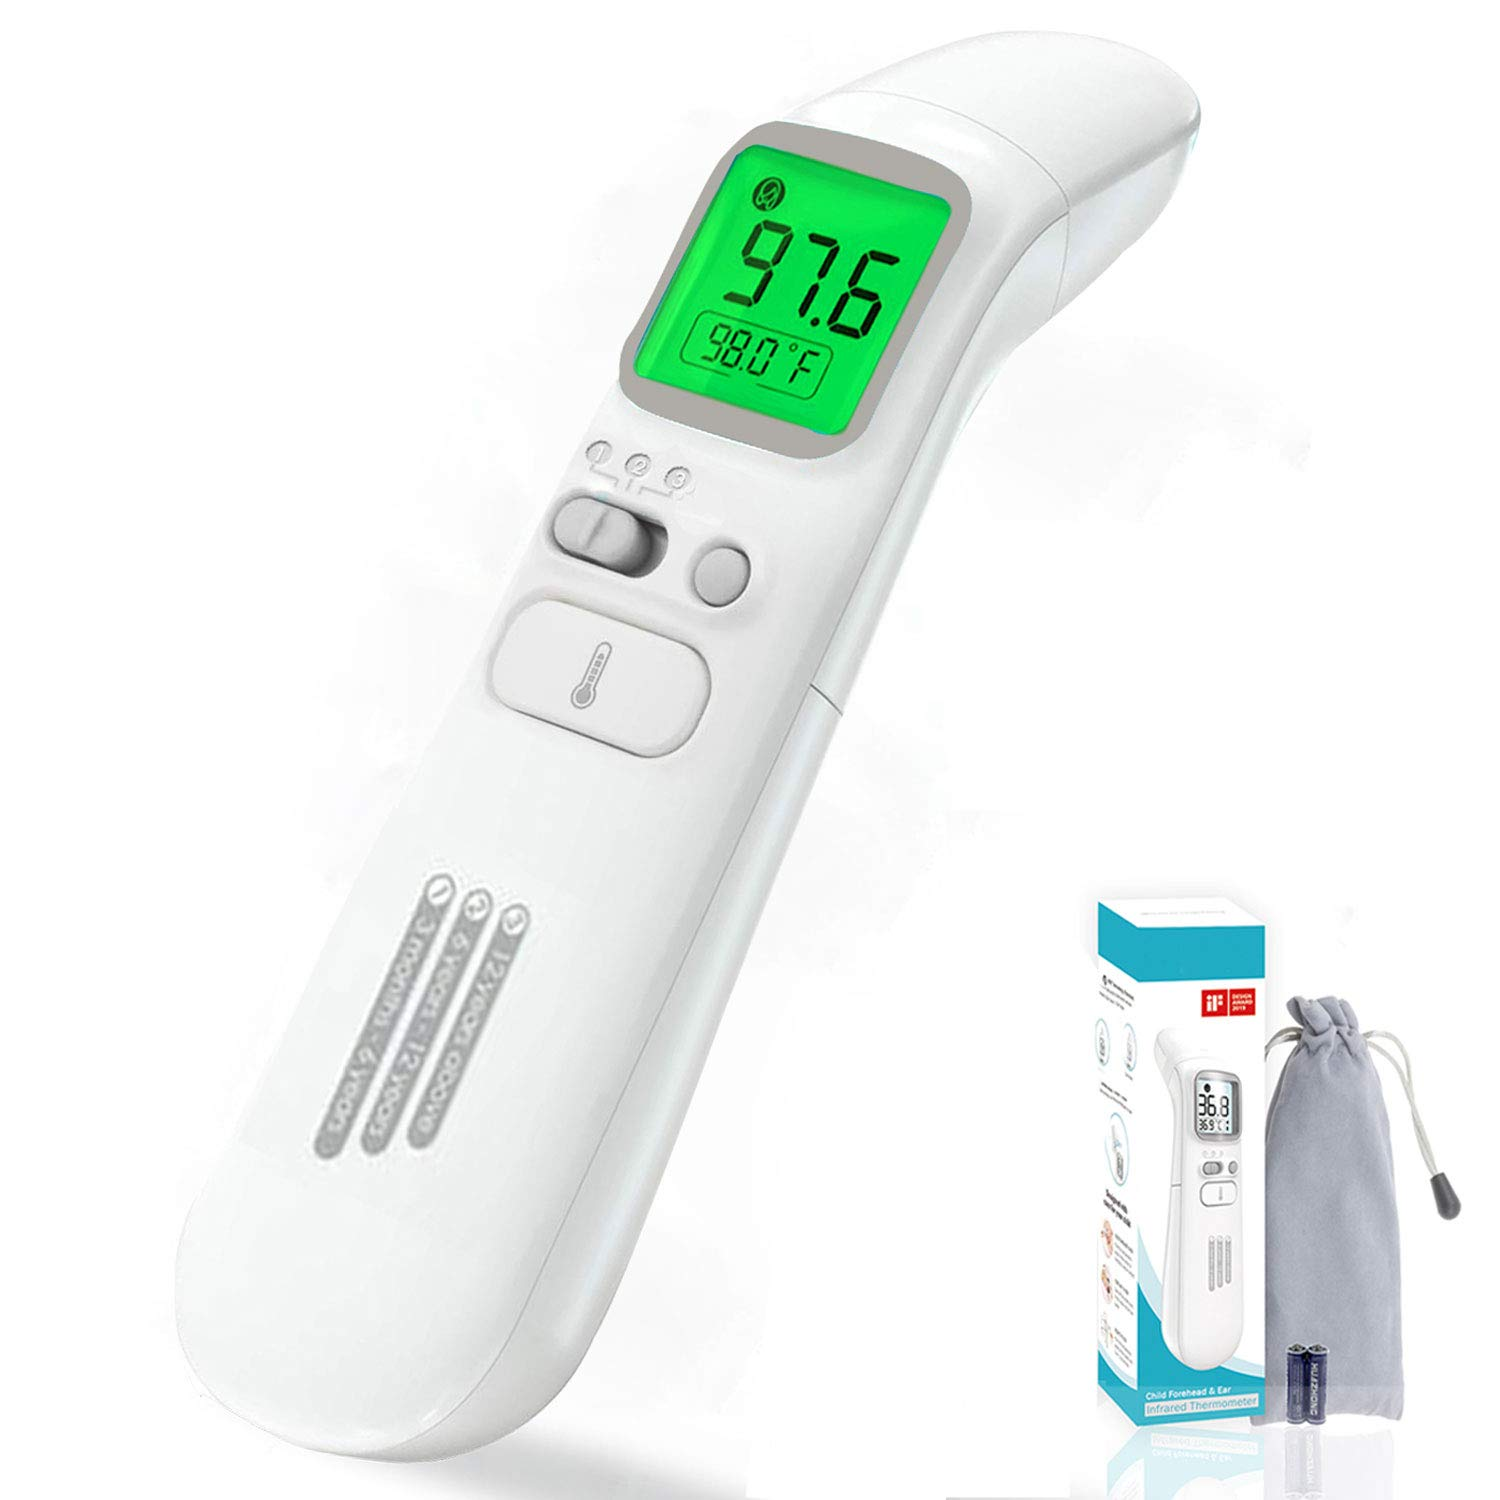 2019 Household  Adult Baby Kids Body LCD Display Fever Measuring Temperature Hot